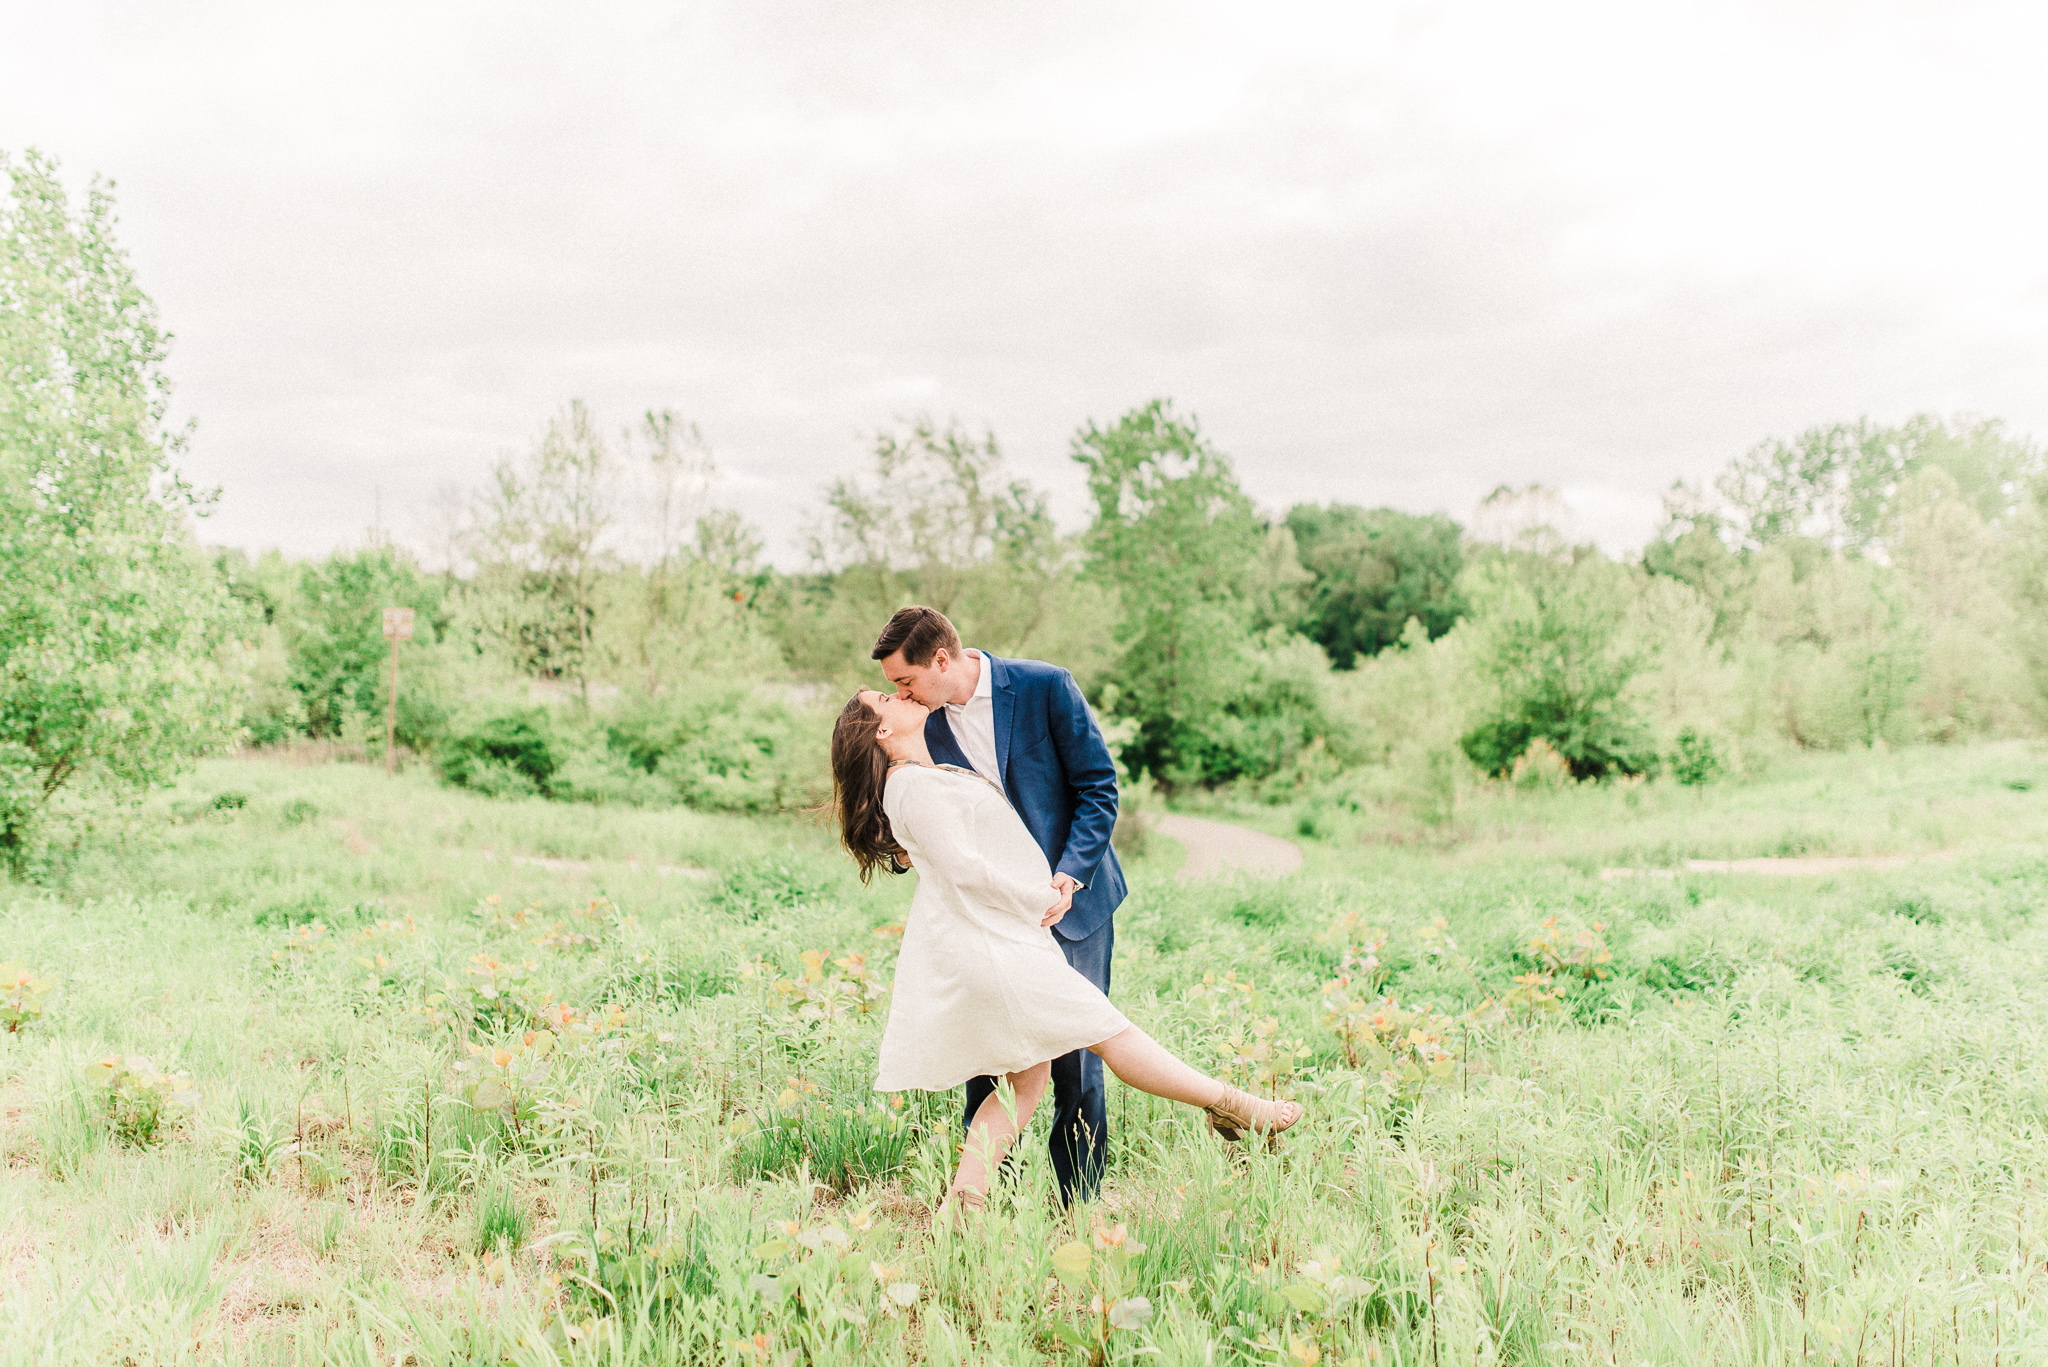 Emily + Jack | Fresh Spring Maternity Pictures in Carmel, Indiana | Indianapolis Bump and Baby Photography